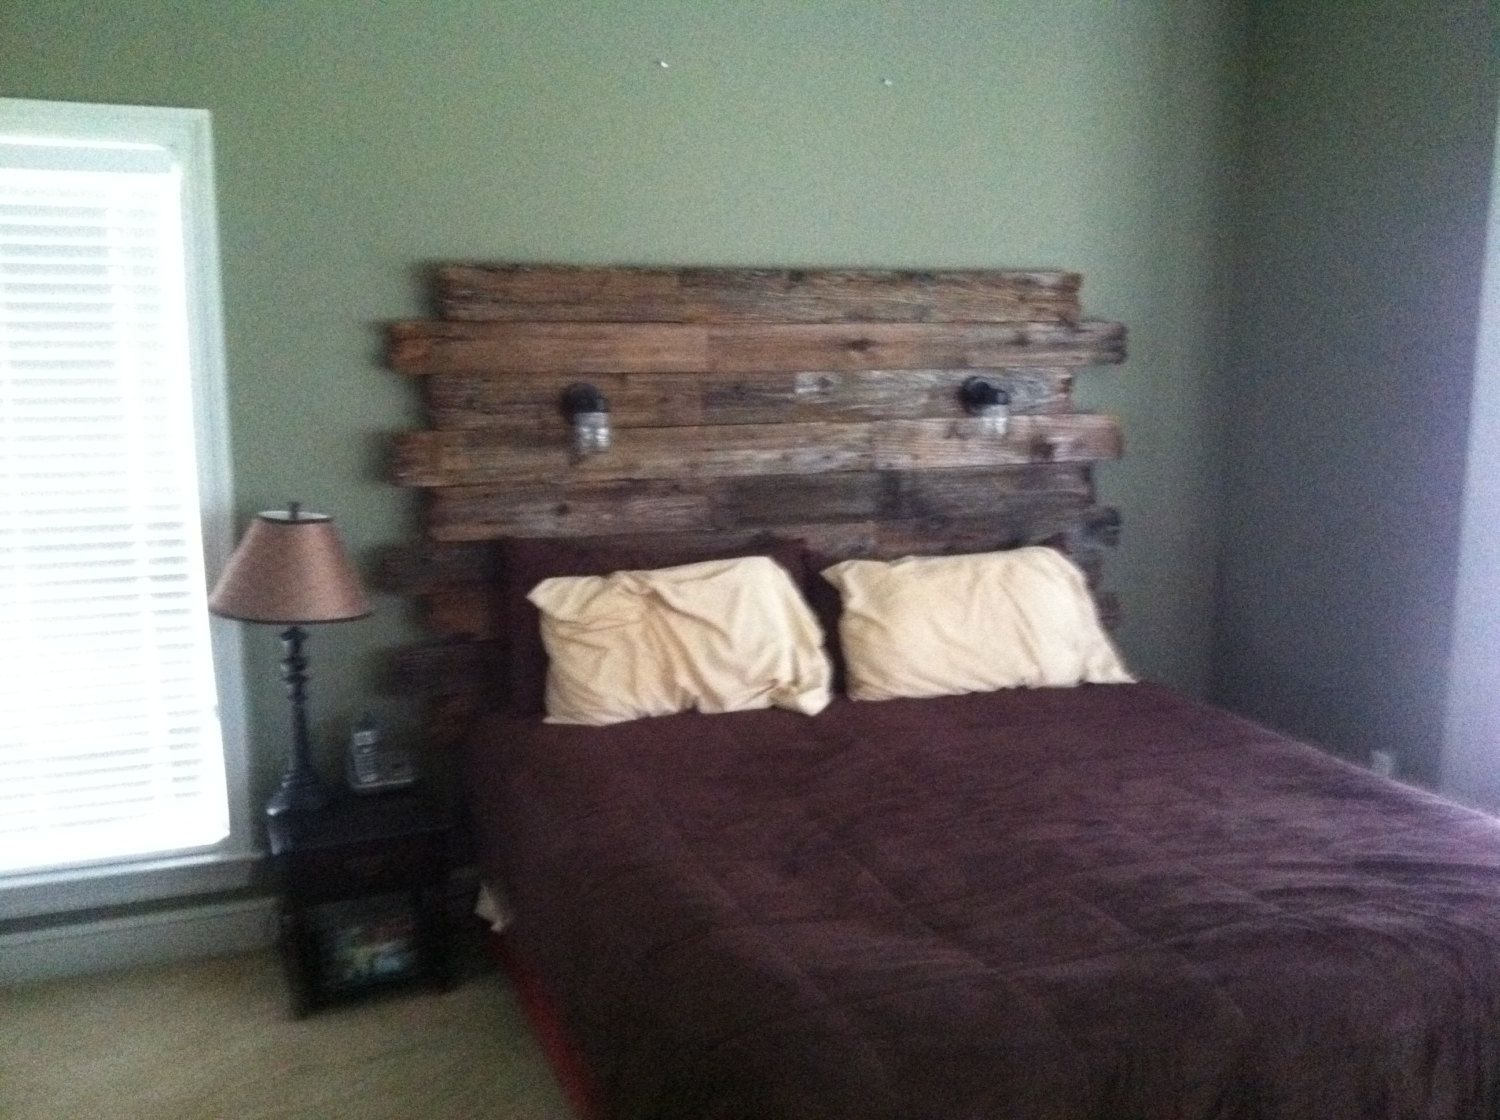 Rustic Barnwood Headboard With Reading Lights By Hammernheel 600 00 Or Make It Yourself For About 20 Bucks